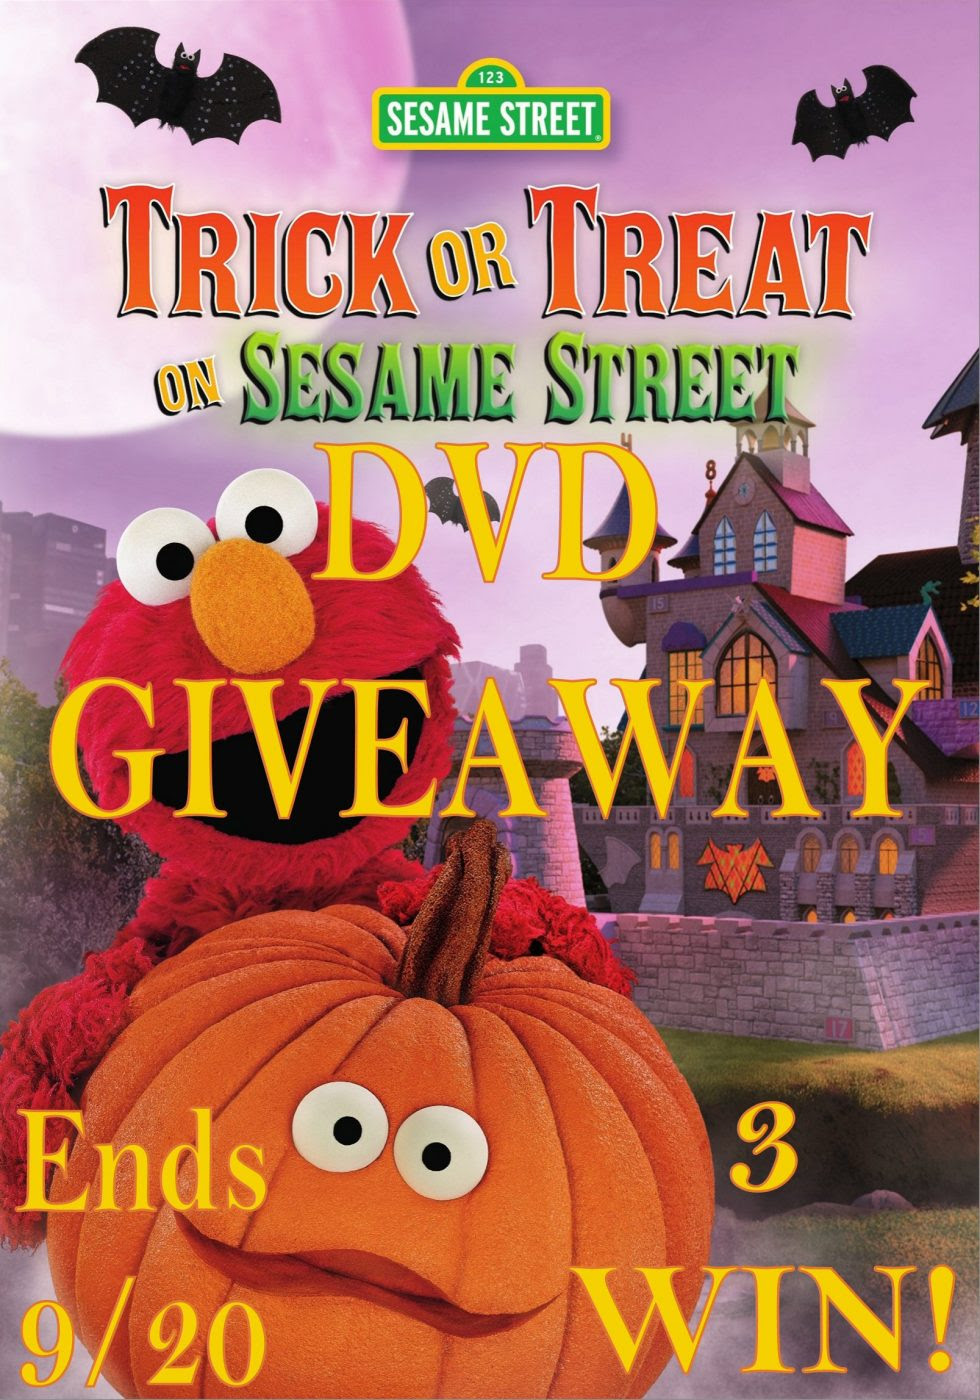 Sesame Street Trick or Treat on Sesame Street 3 WIN Giveaway